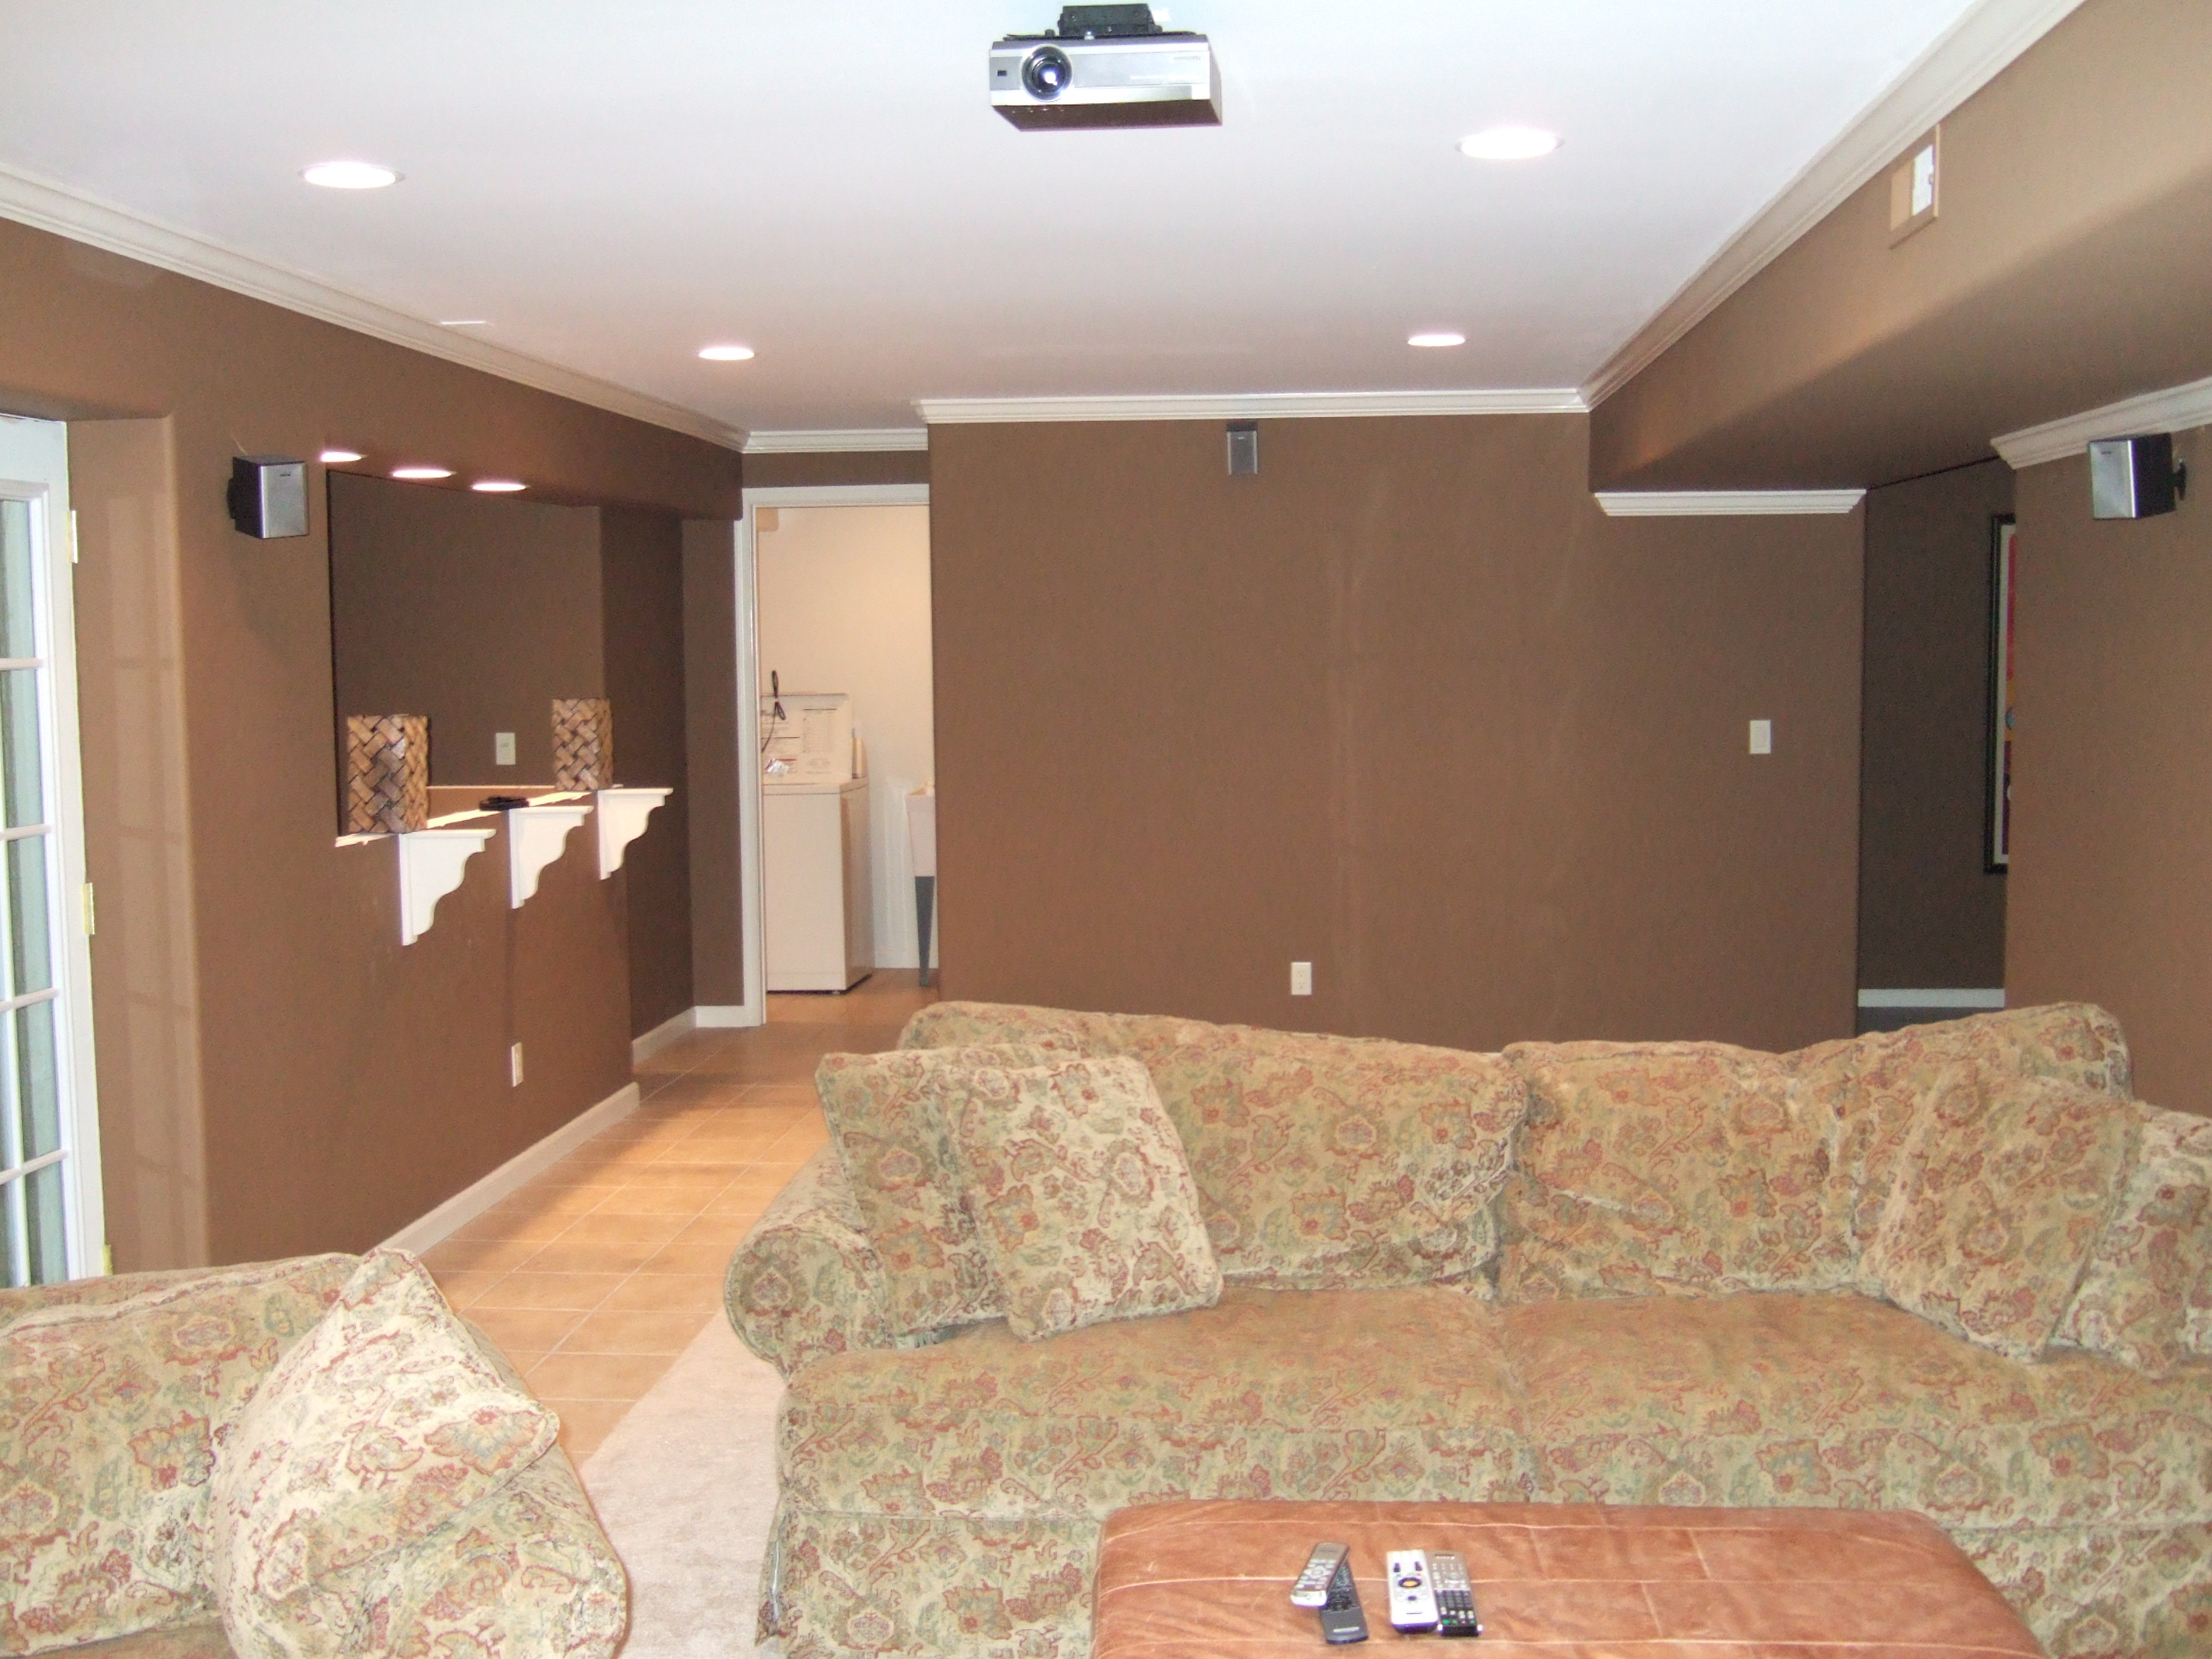 stunning small finished basement ideas 2848 x 2136 1476 kb jpeg - Small Basement Design Ideas